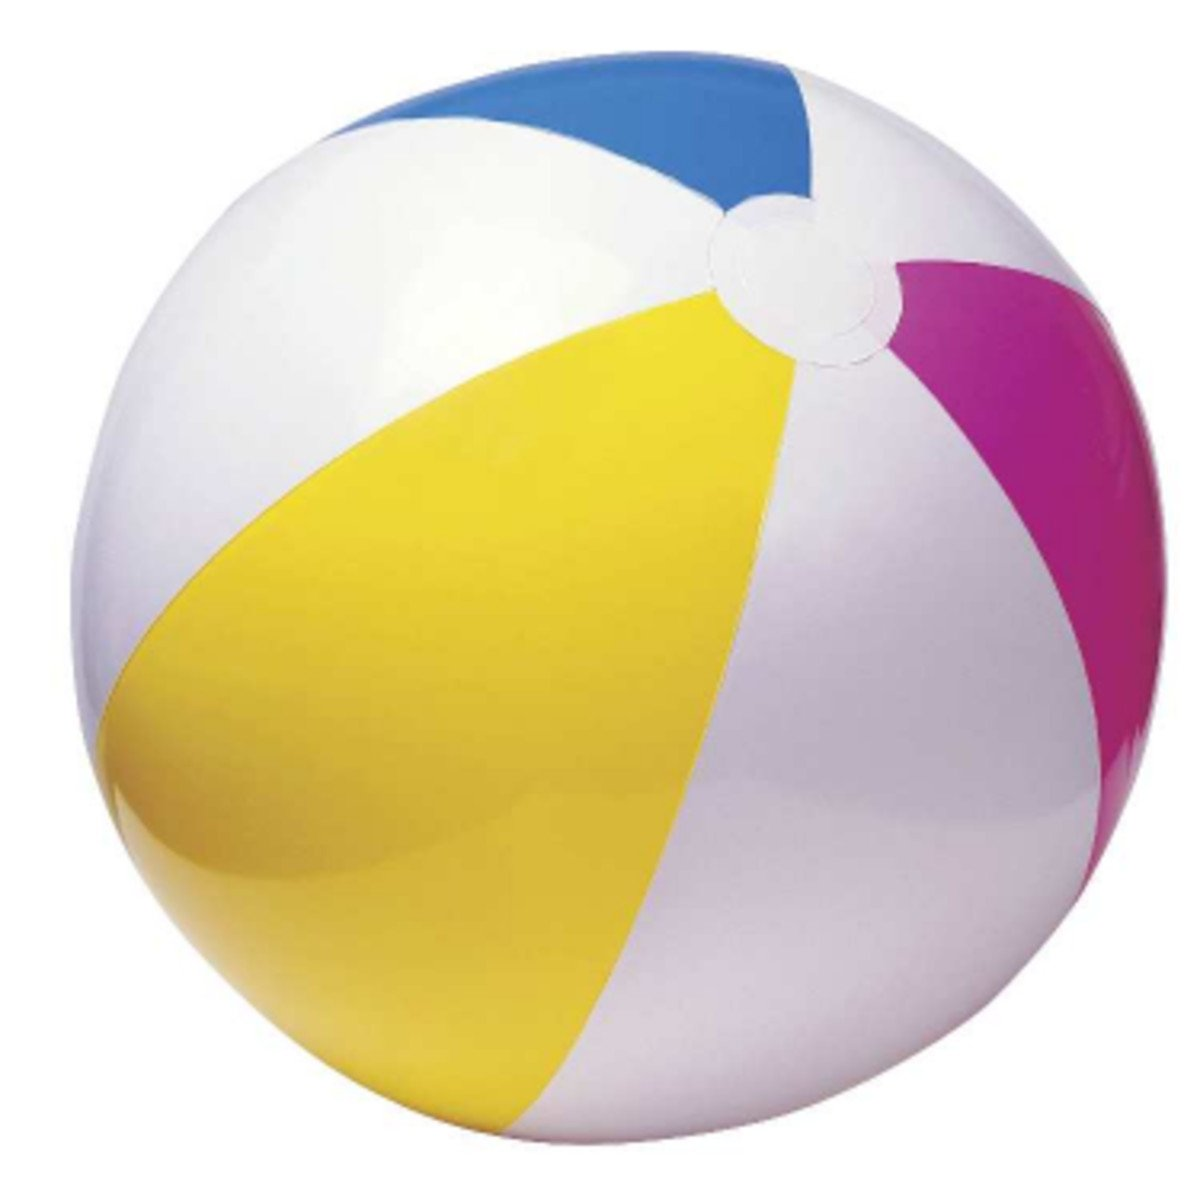 Intex 12 Pack Economy 24'' Beach Ball (Pack of 12) by Intex